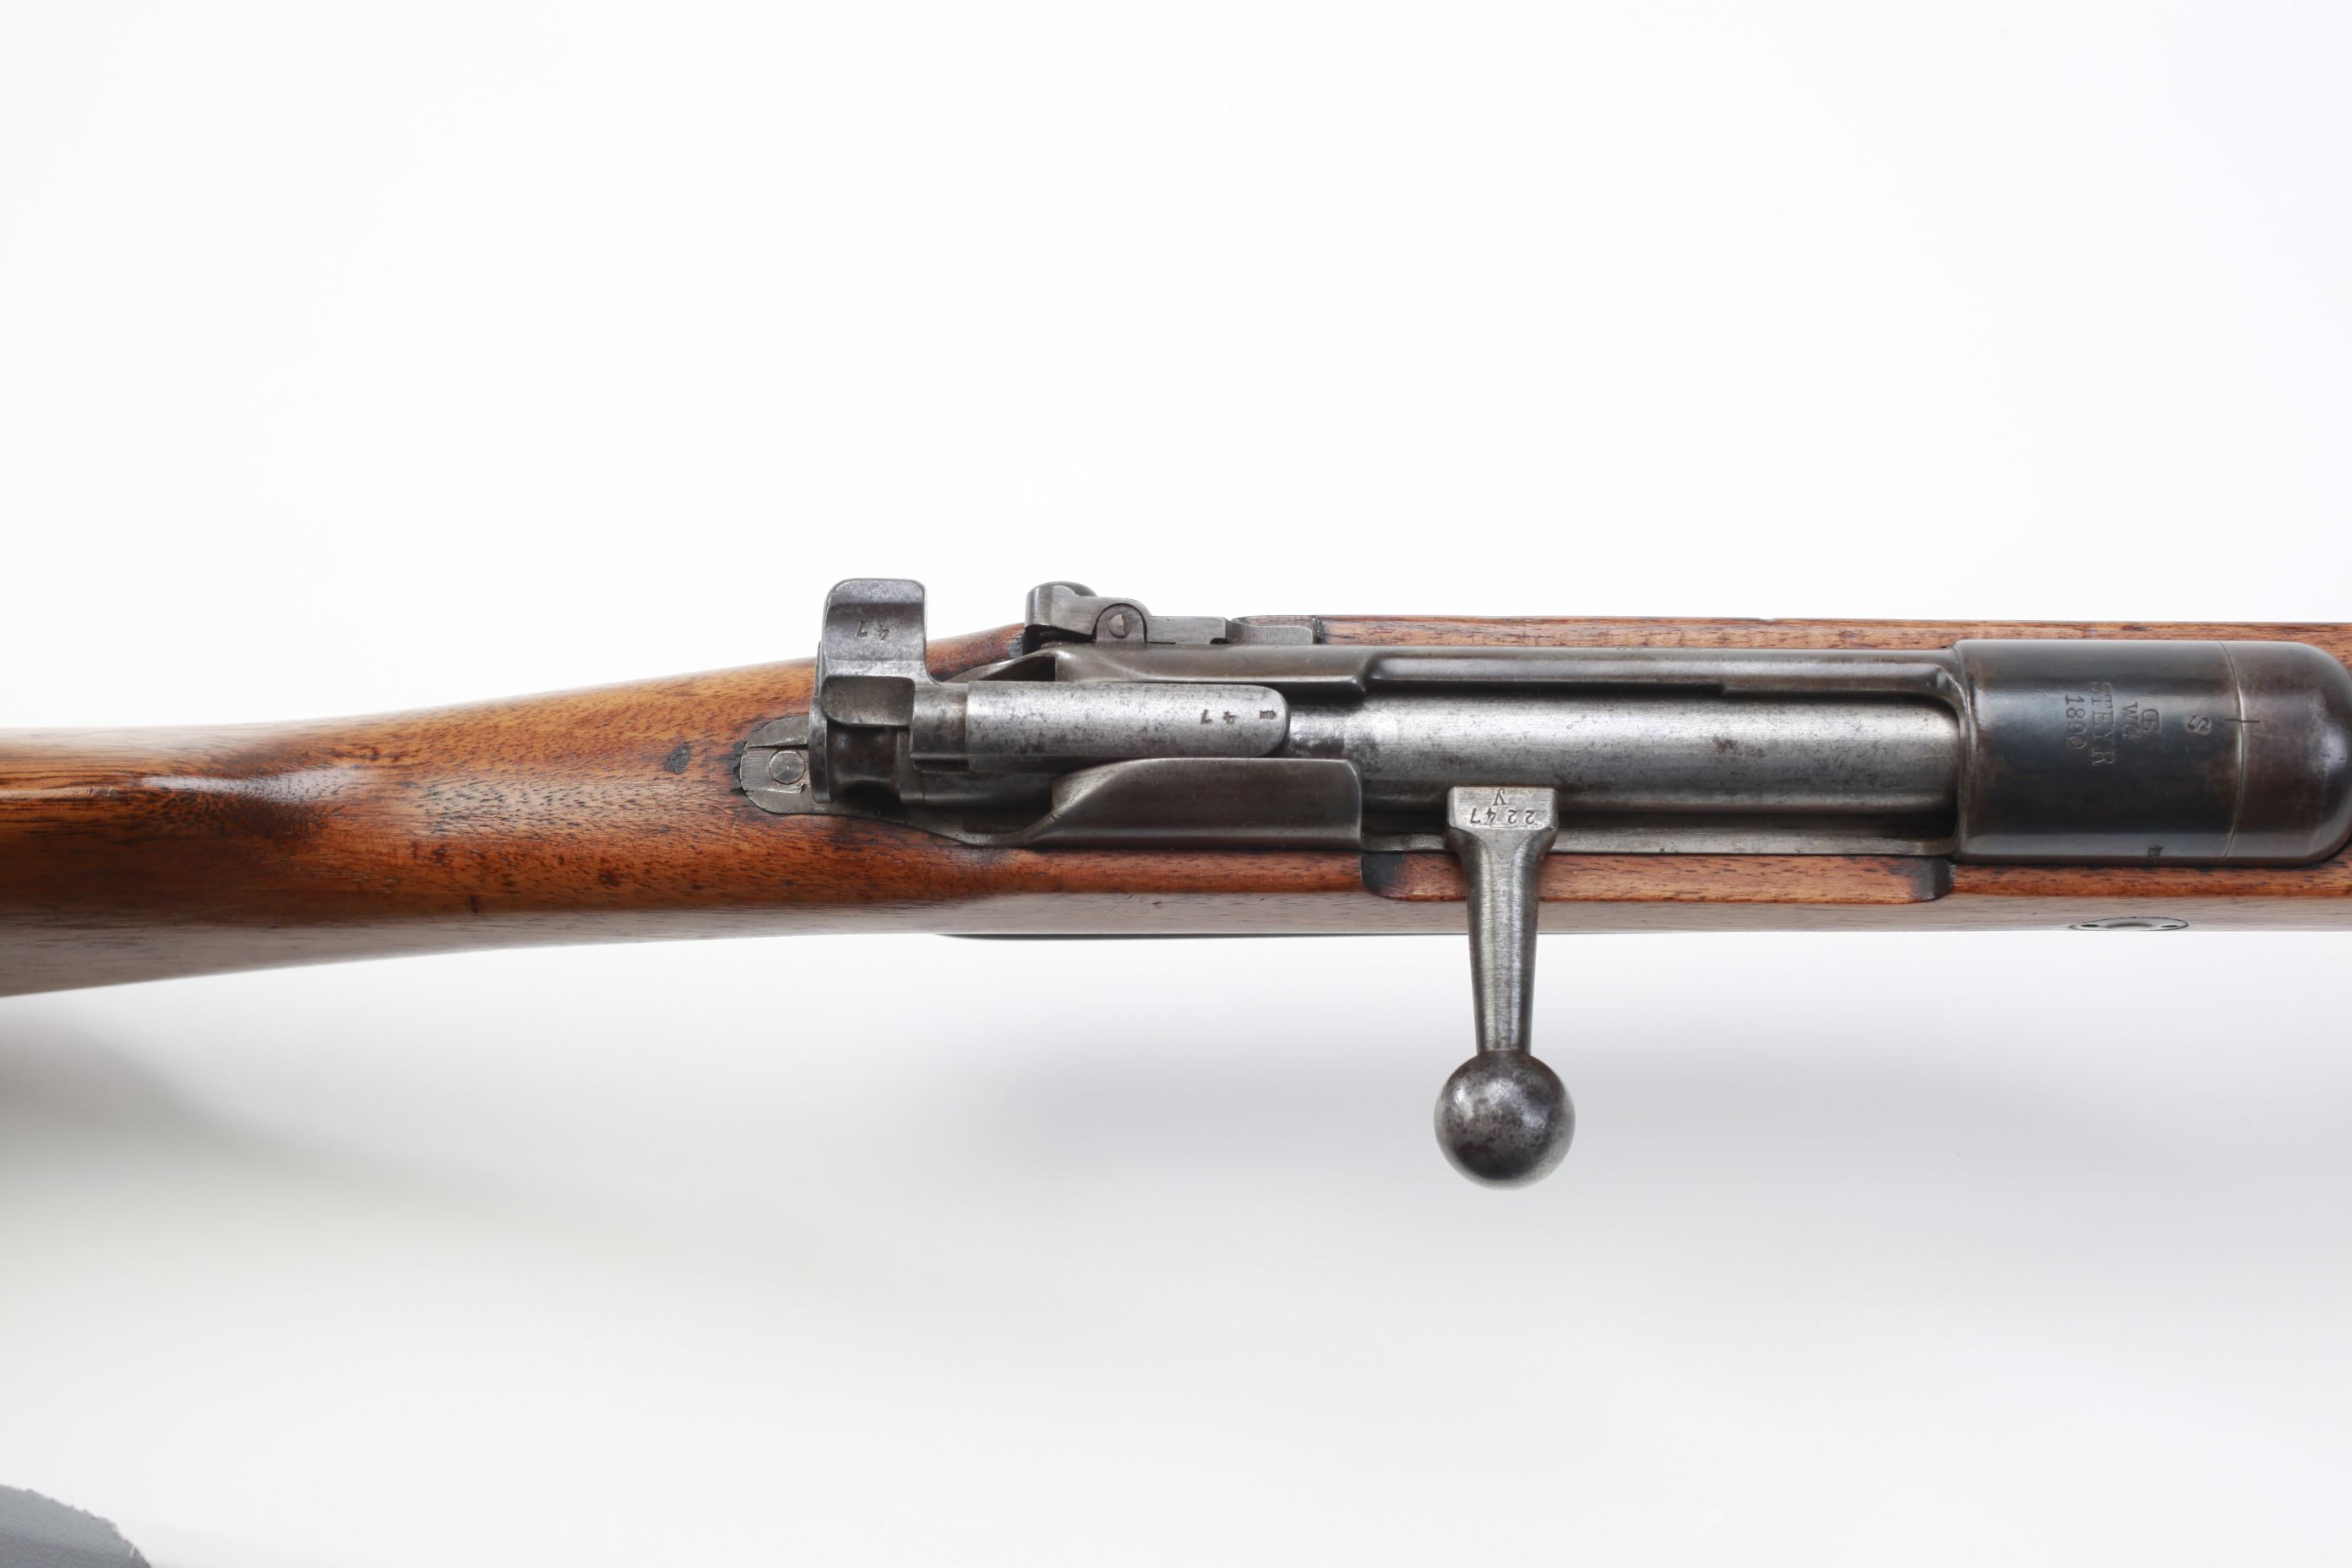 Waffenfabrik Steyr Gewehr 88 Commission Bolt Action Rifle